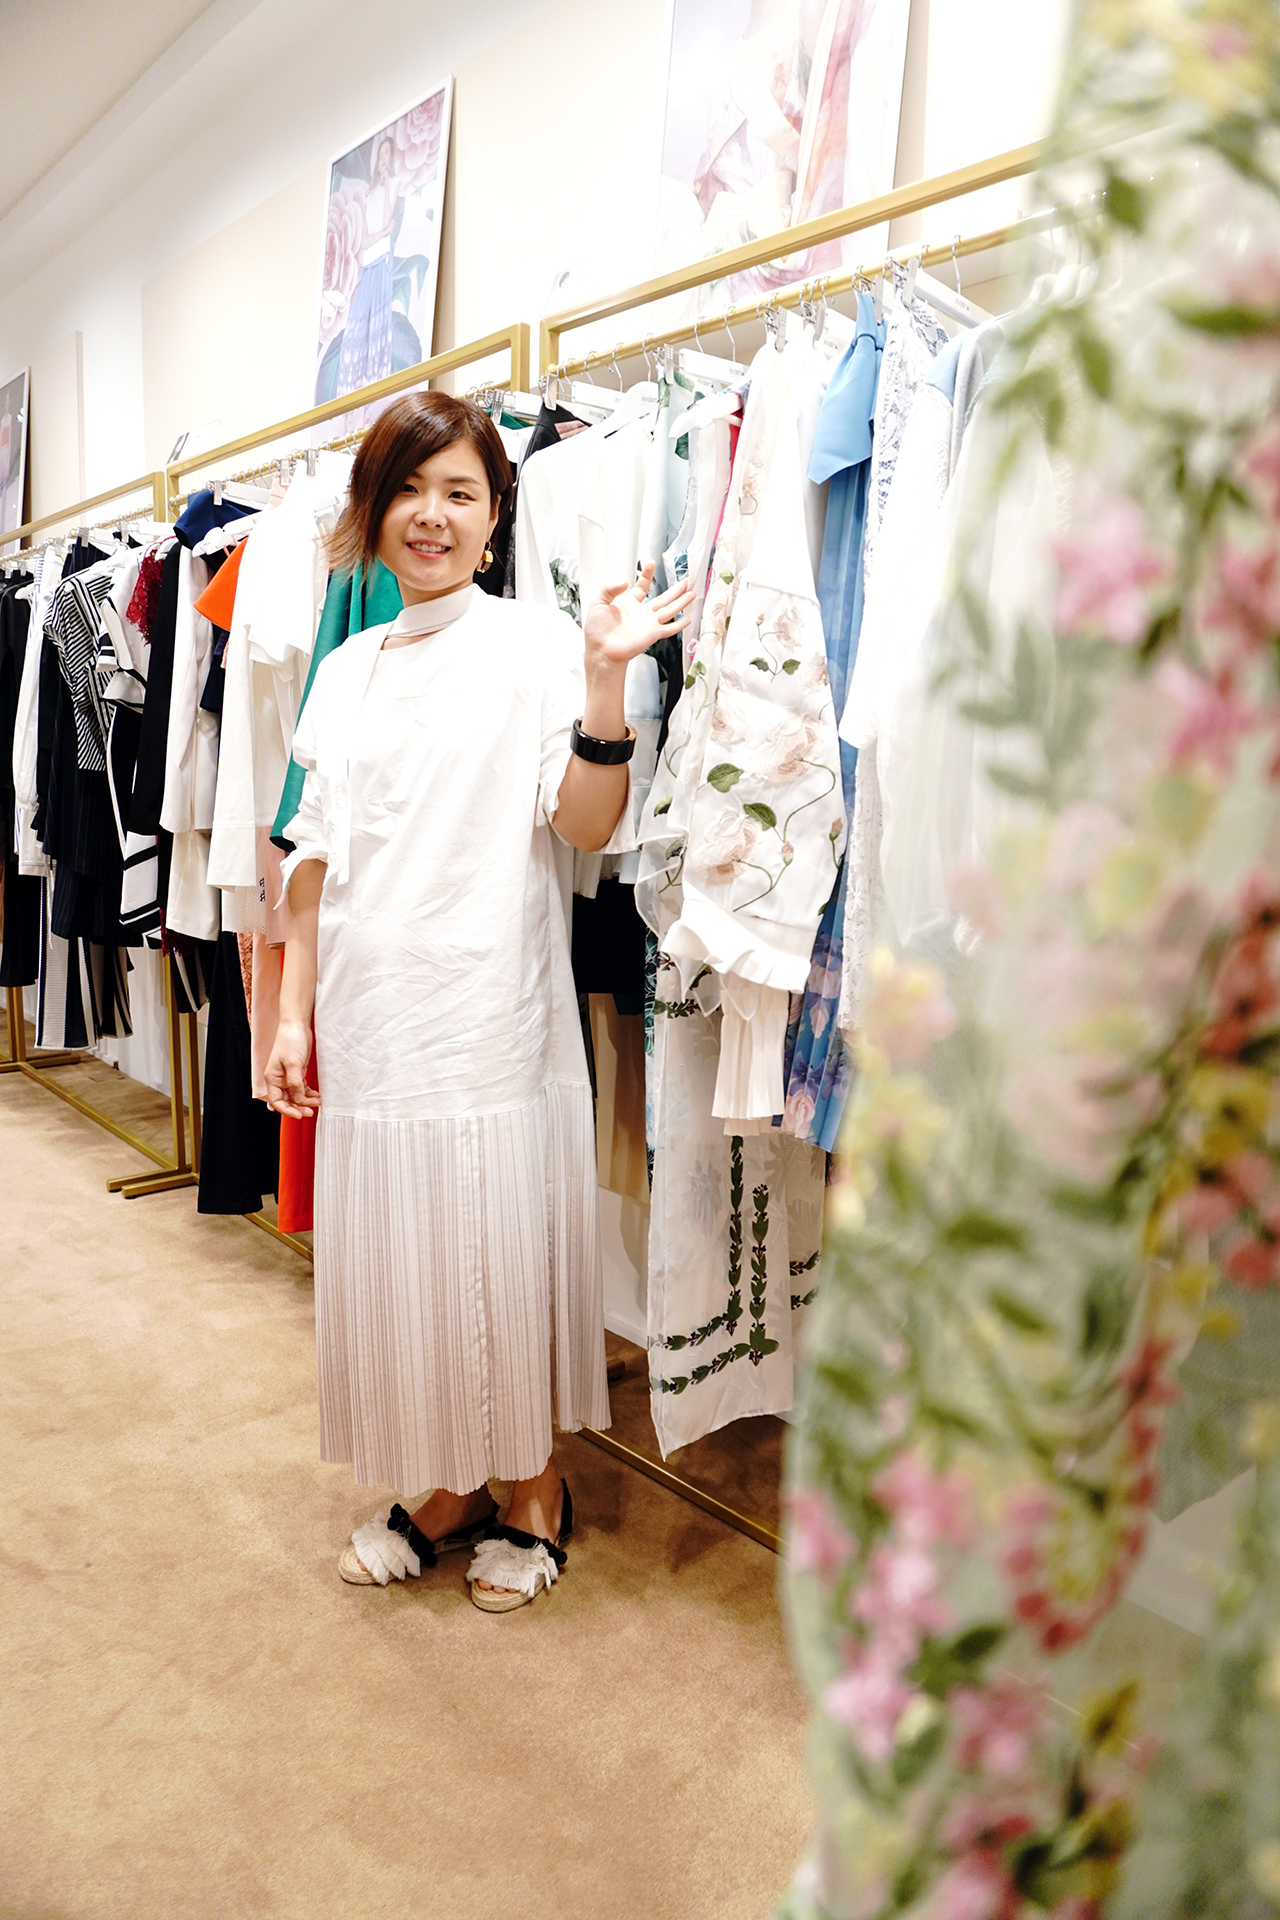 A woman wearing a white maxi dress is waving at the camera